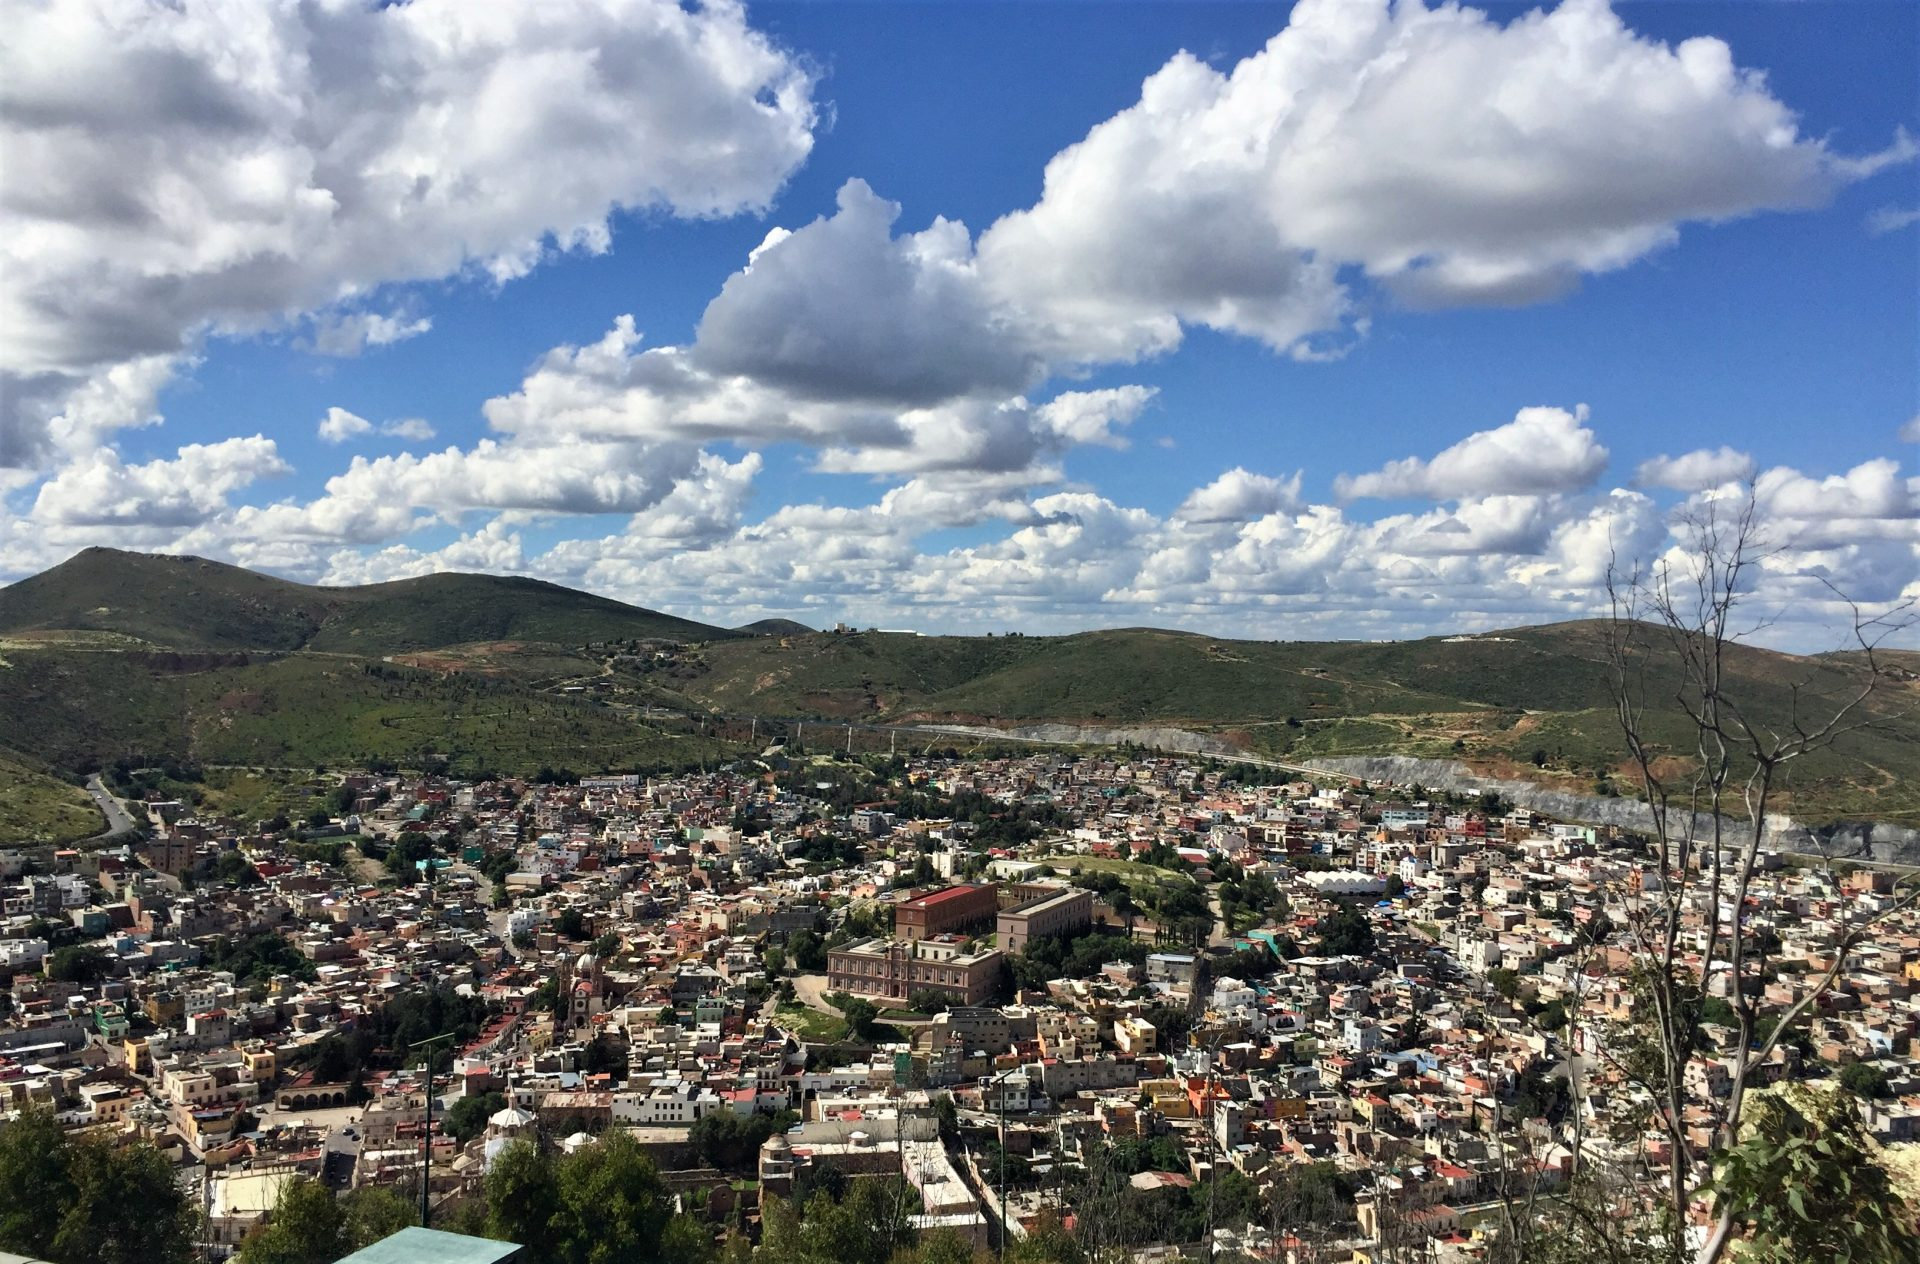 The State of Zacatecas – Part 2 (Sept 6 to 10)